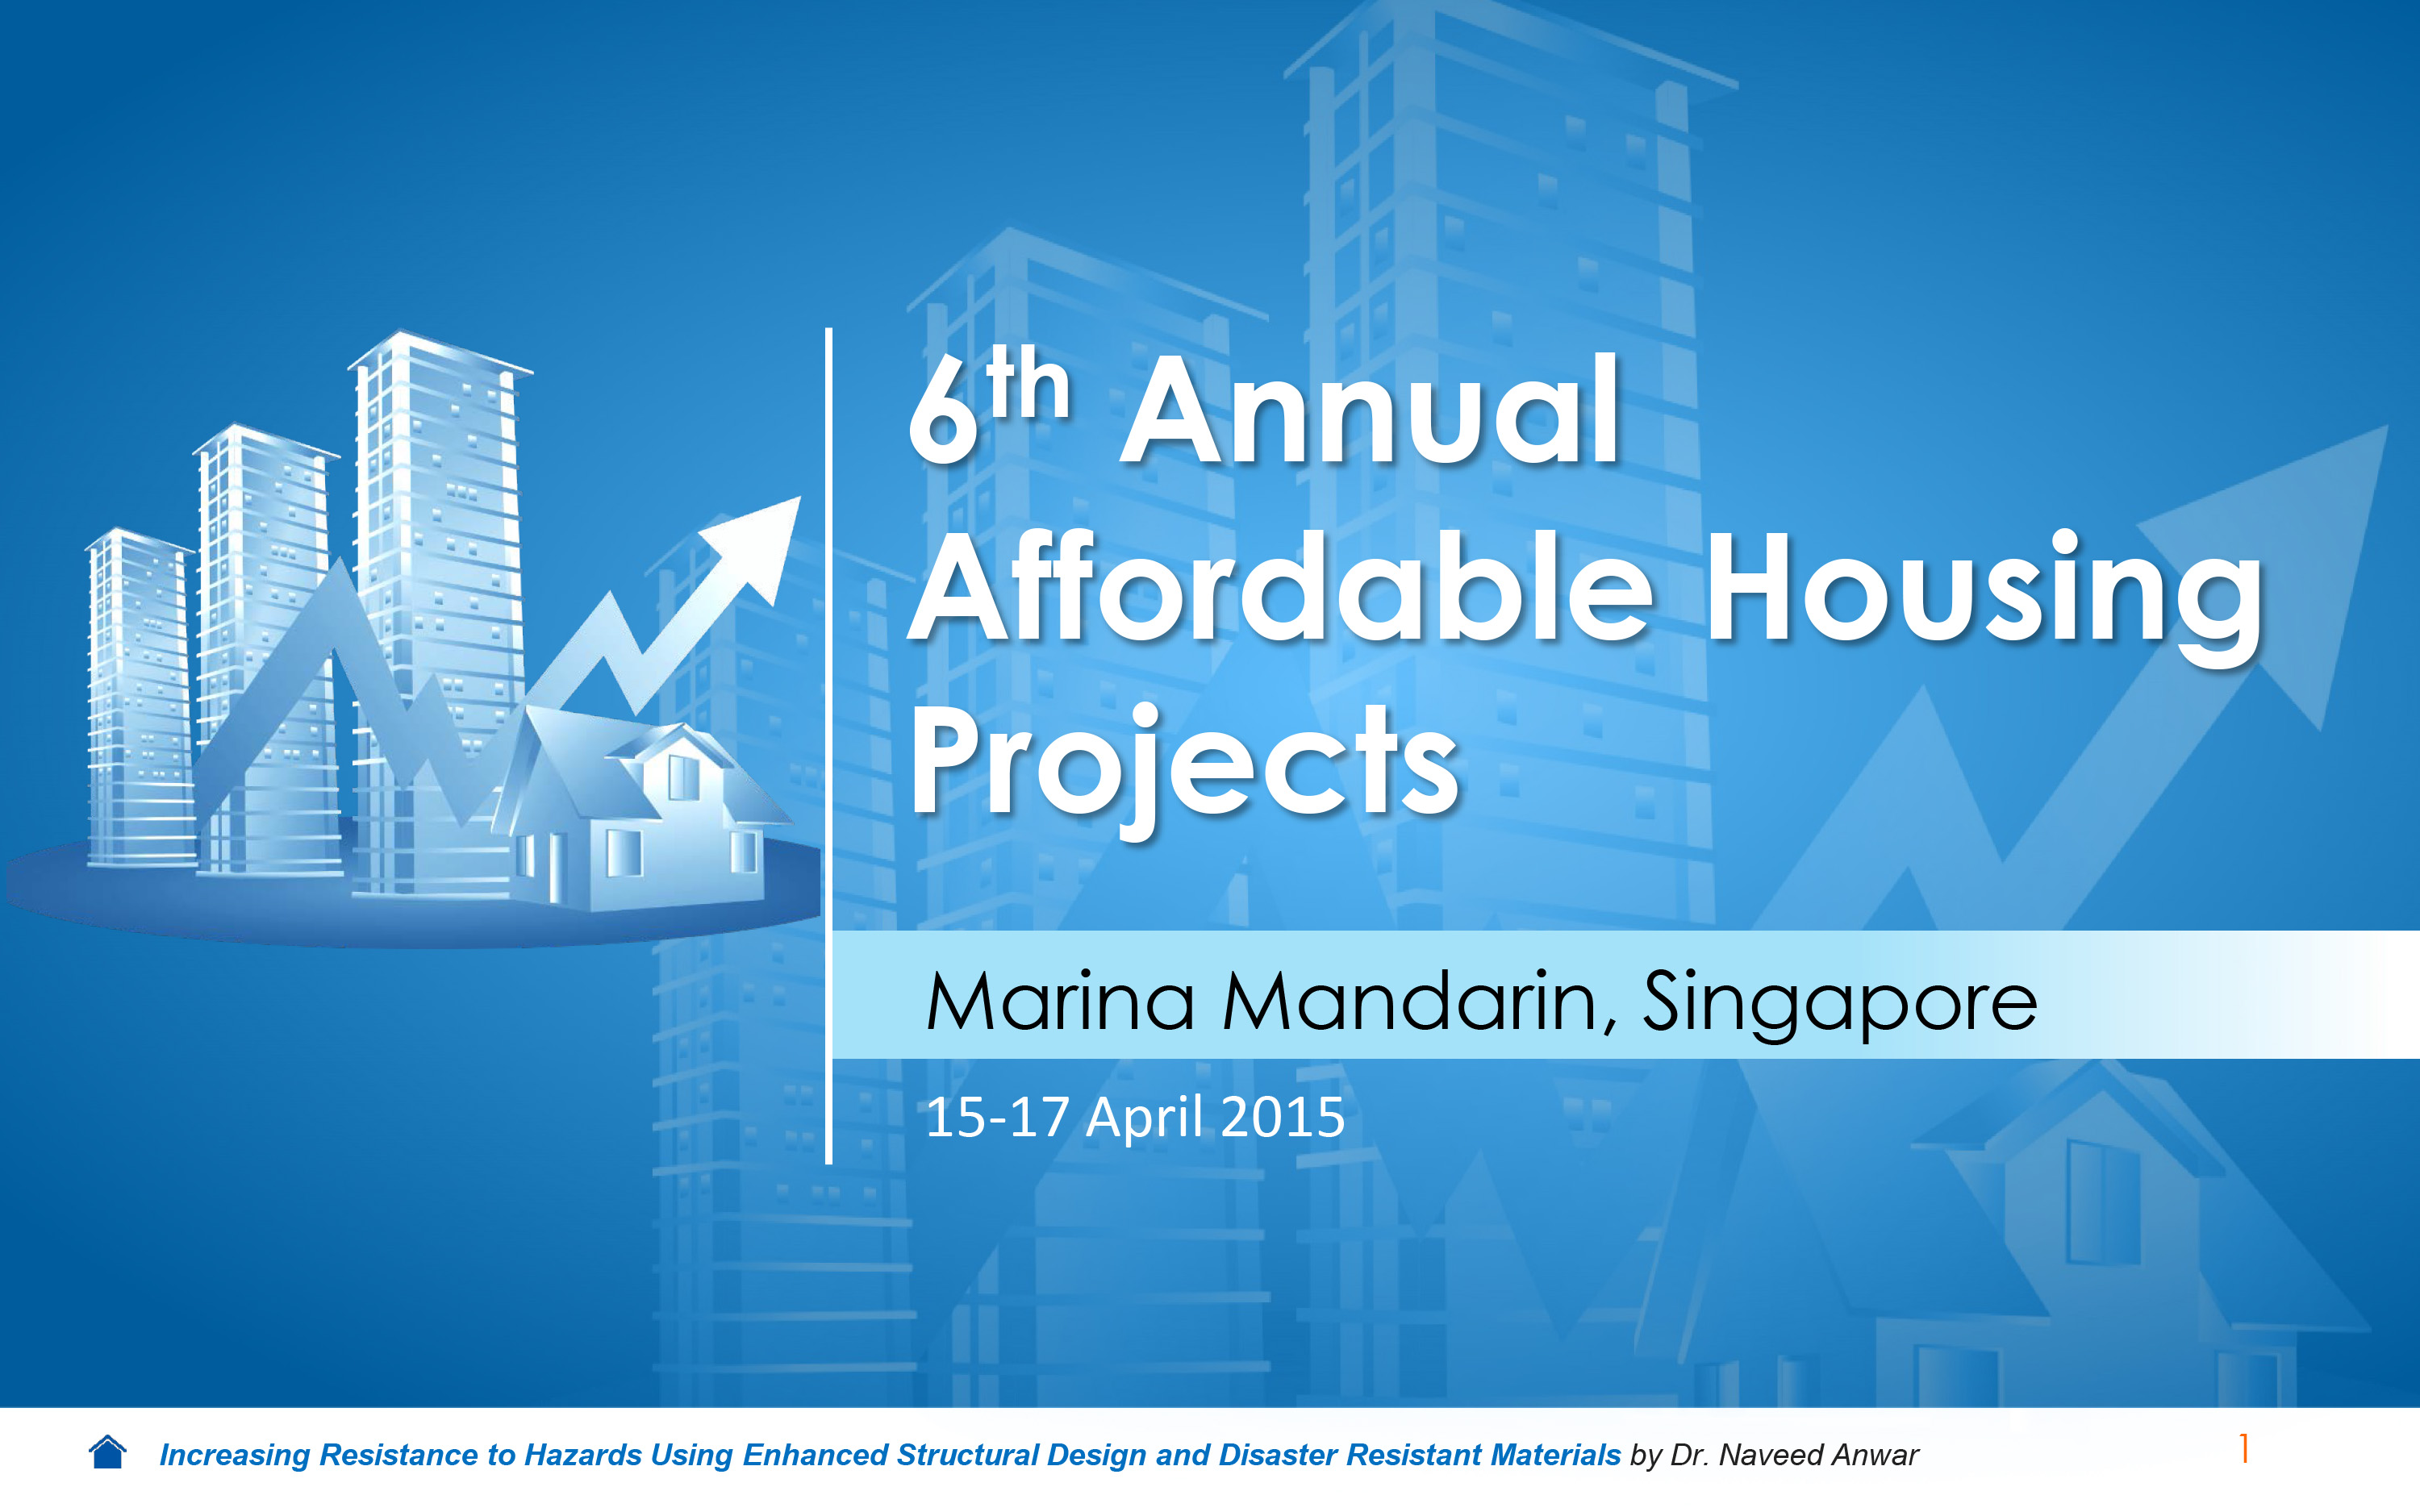 6th Annual Affordable Housing Projects (15-17 April 2015), Marina Mandarin, Singapore